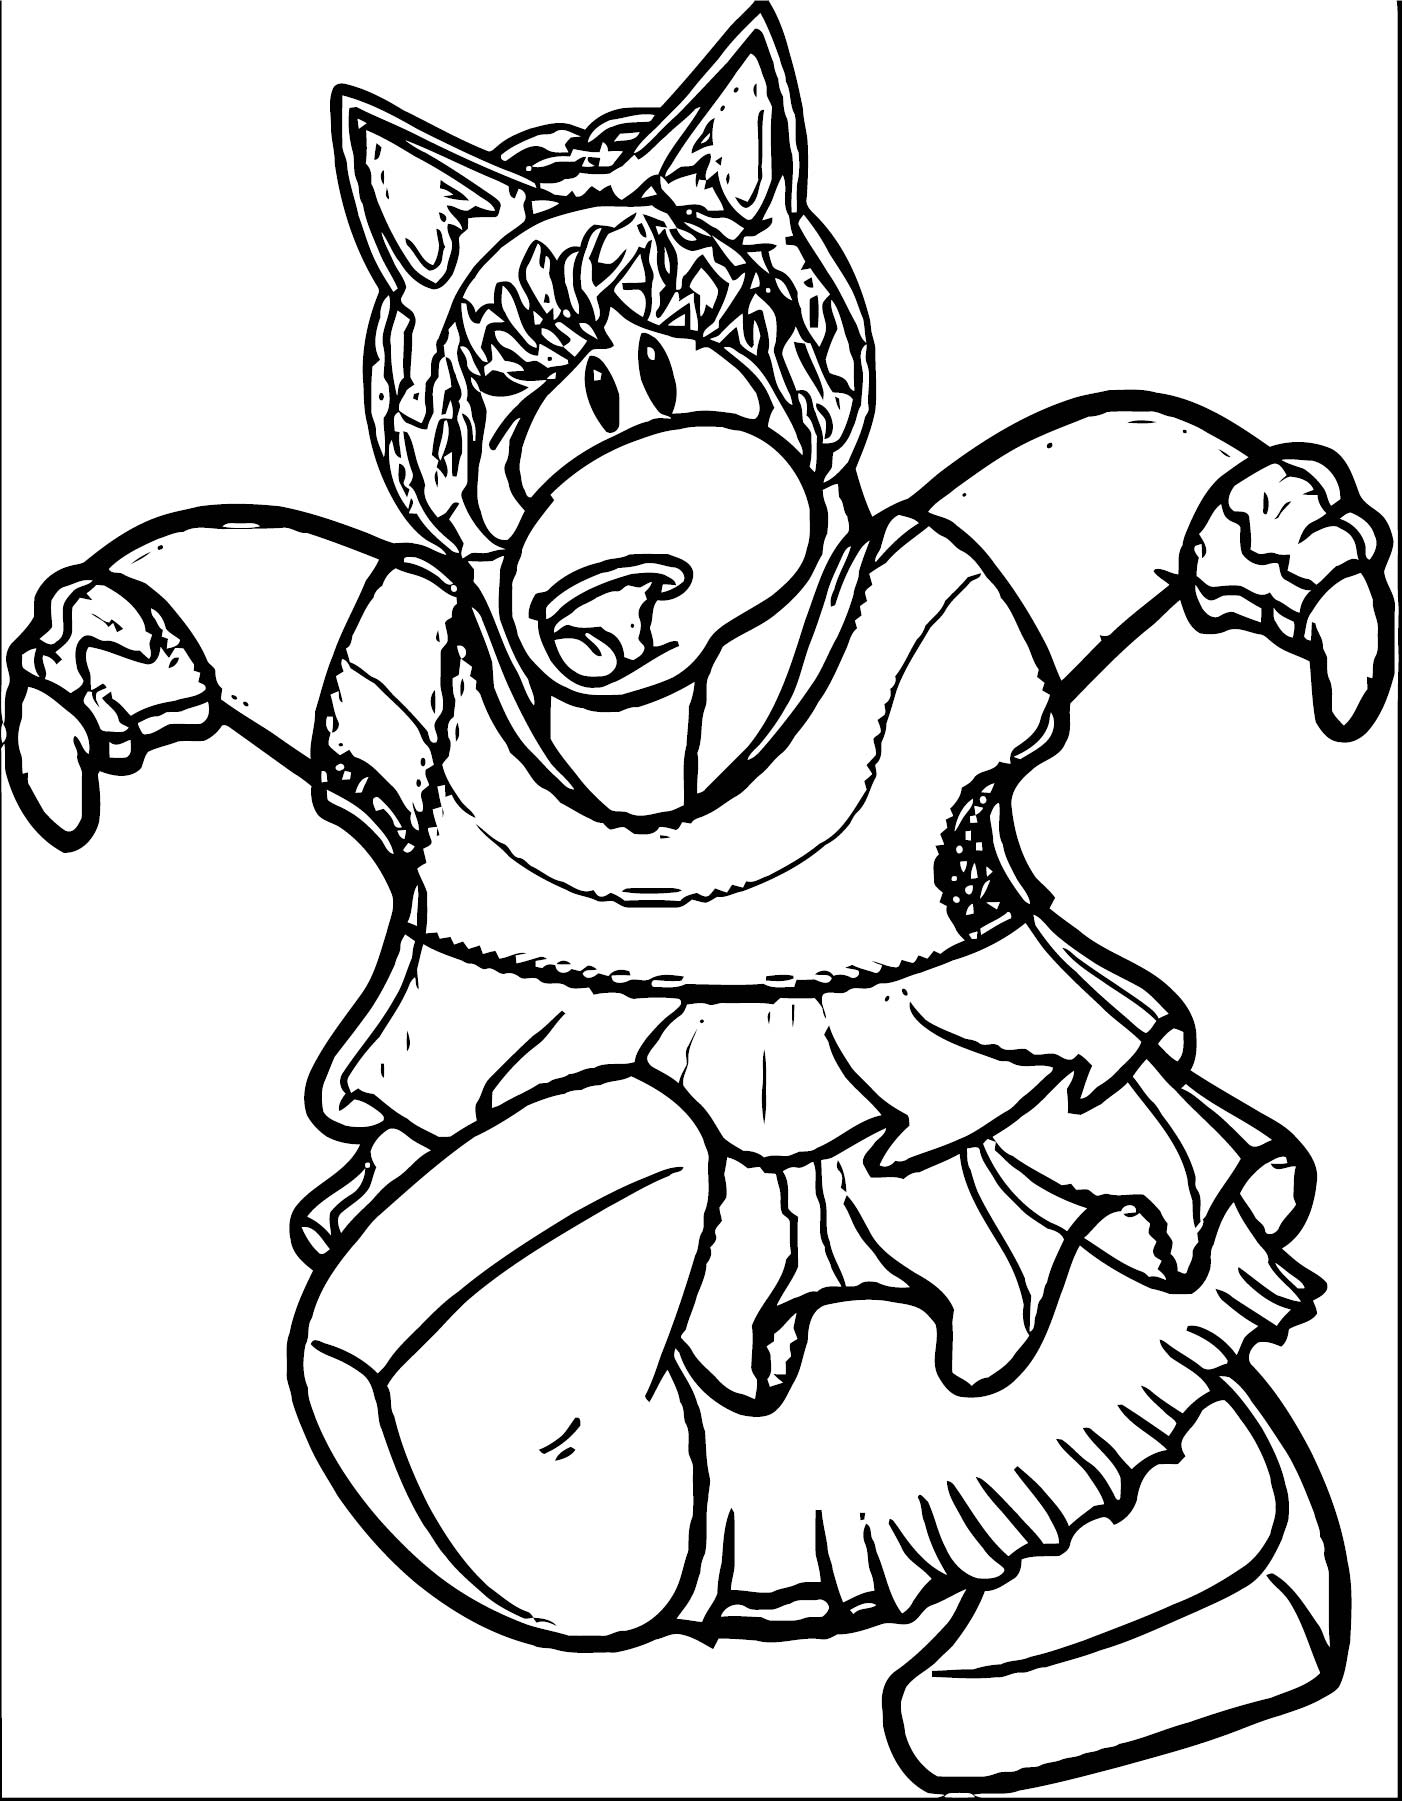 cadence club penguin coloring pages - photo#12